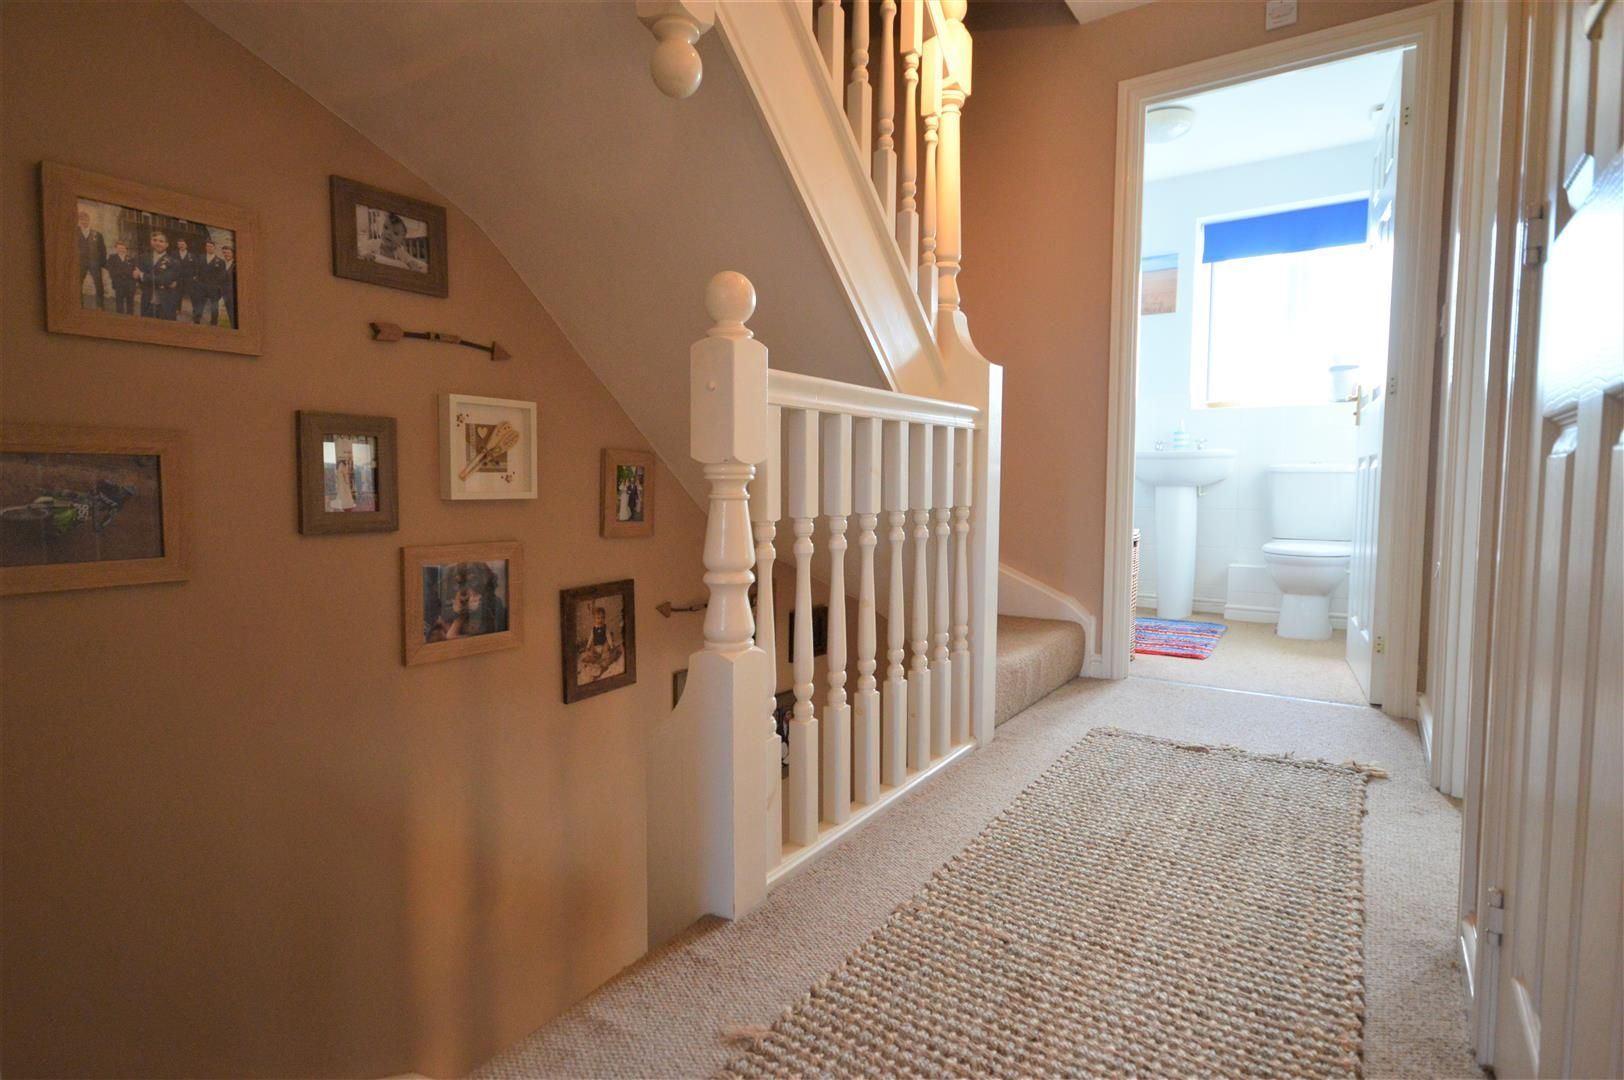 4 bed semi-detached for sale in Leominster  - Property Image 14